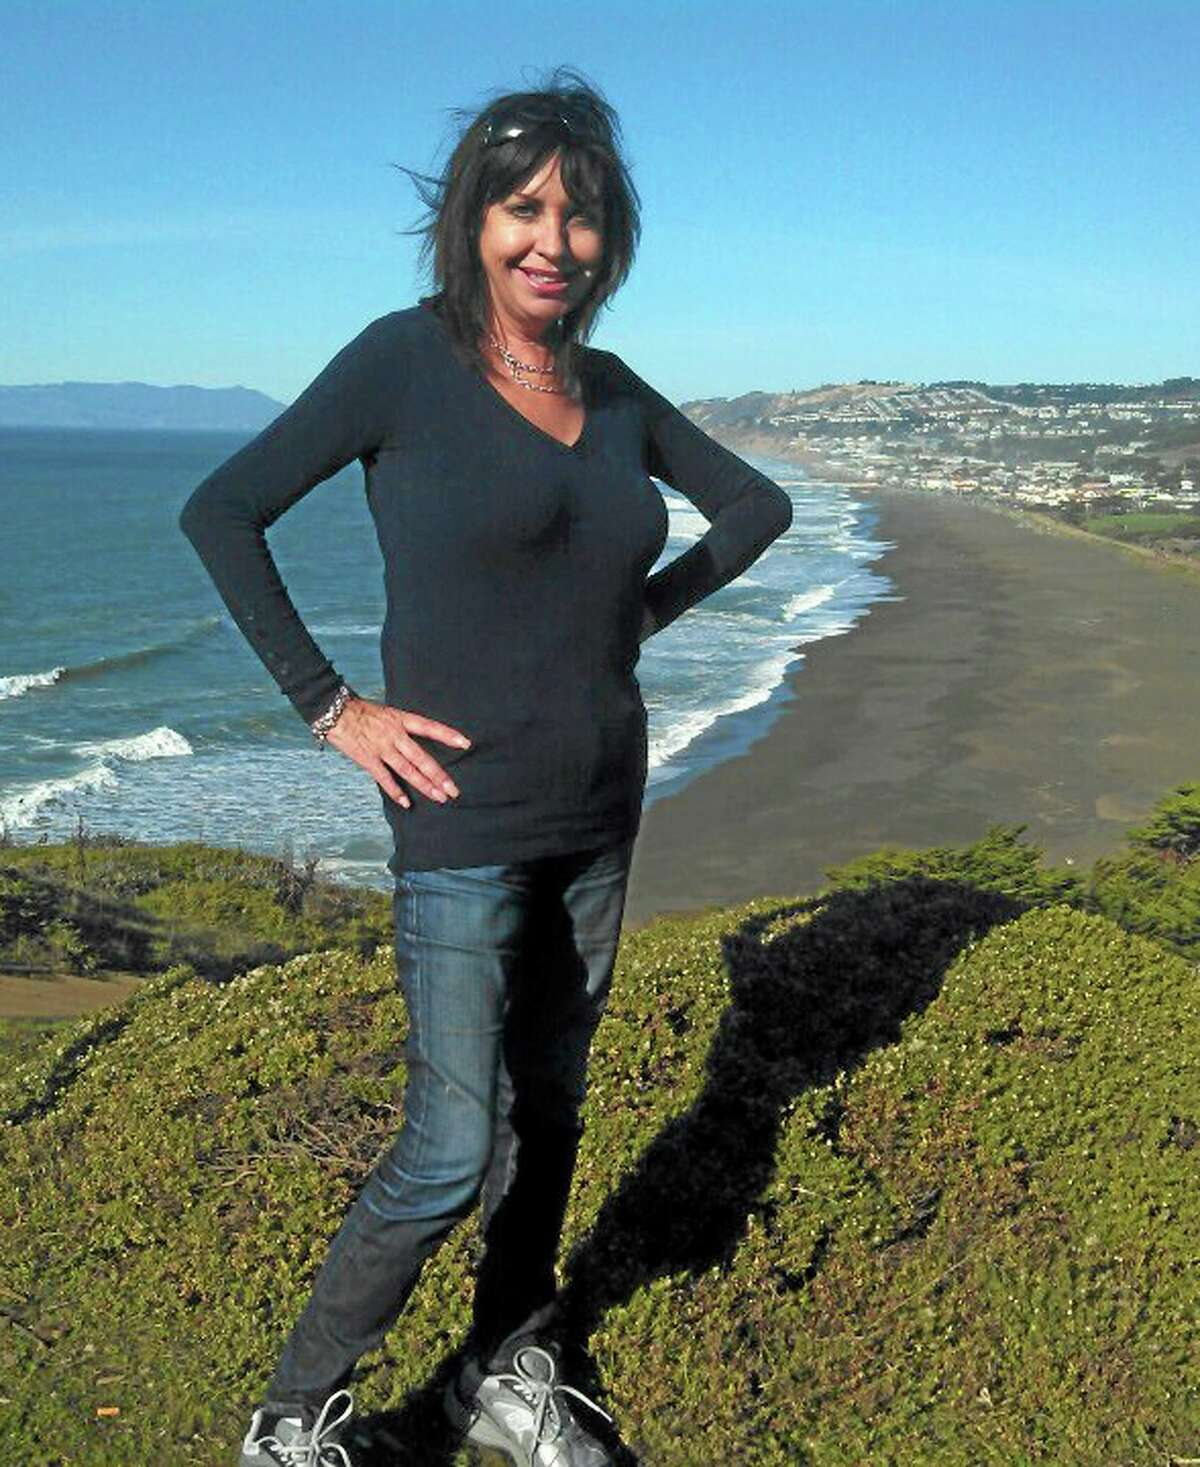 An undated photo provided by David Perry & Associates, shows Lynne Spalding. Officials confirmed Tuesday Oct. 9, 2013, the identity of the body discovered in a rarely used stairwell at San Francisco General Hospital more than two weeks ago as that of Lynne Spalding, 57, a native of England. Spalding was being treated for an infection at the hospital when she disappeared from her room on Sept. 21, 2013. (AP Photo/Courtesy of David Perry & Associates)